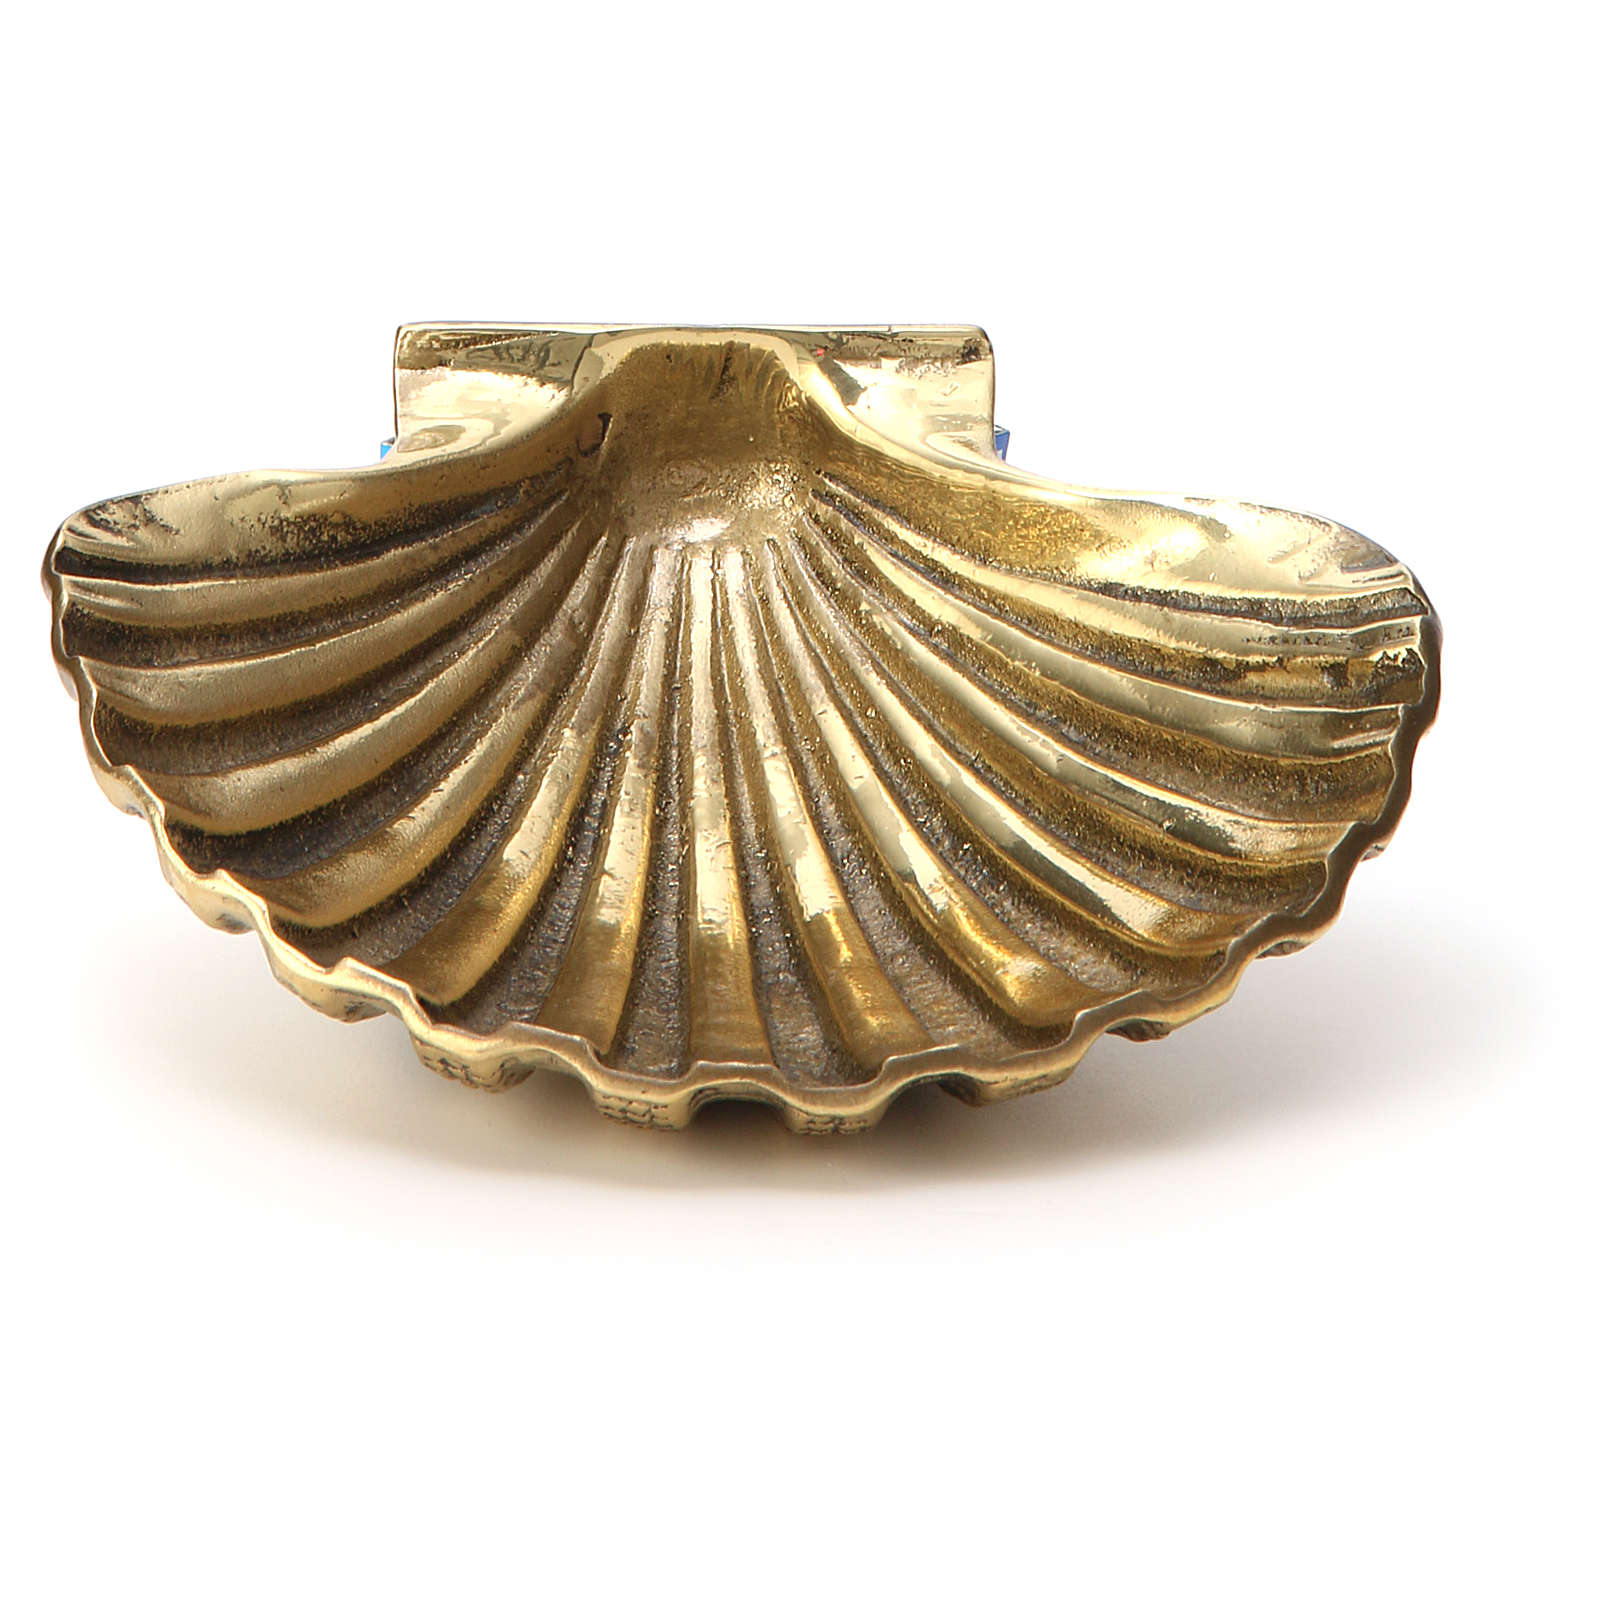 Baptismal shell in gold plated bronze 13x10cm 3